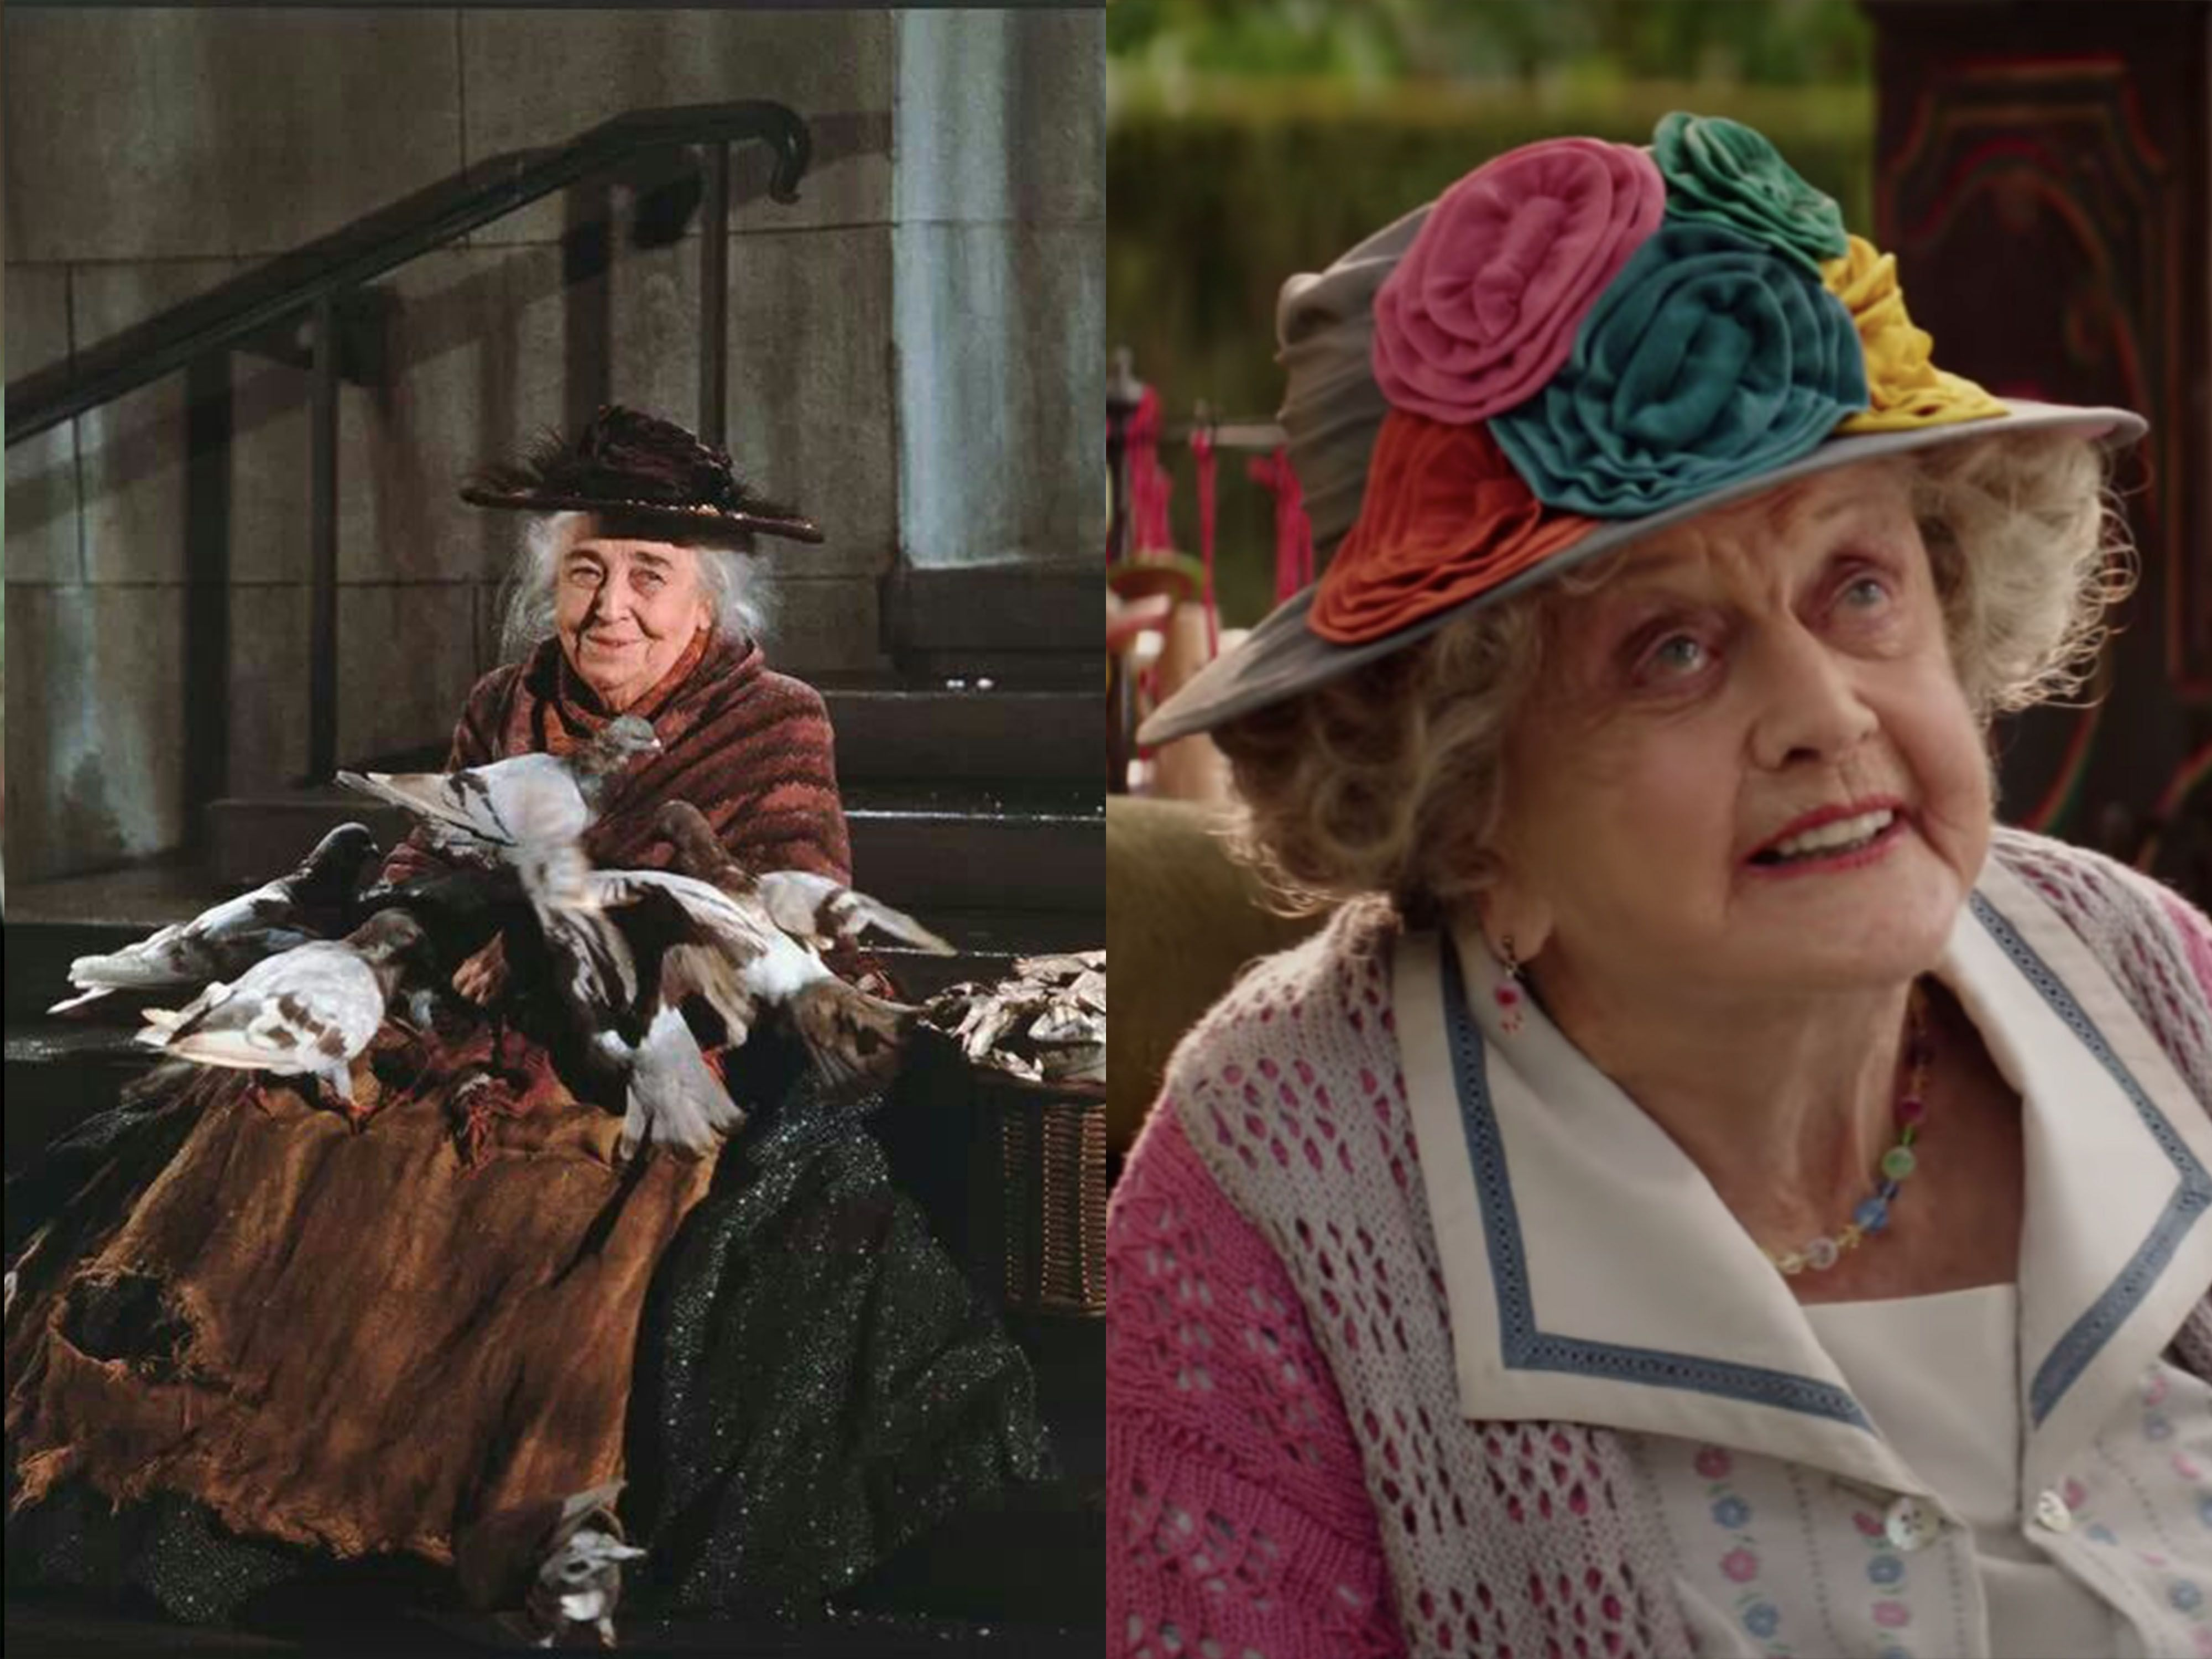 How Do The Mary Poppins Sequel Characters Look Compared To The Original Cast Pictures Of The Mary Poppins Returns Cast